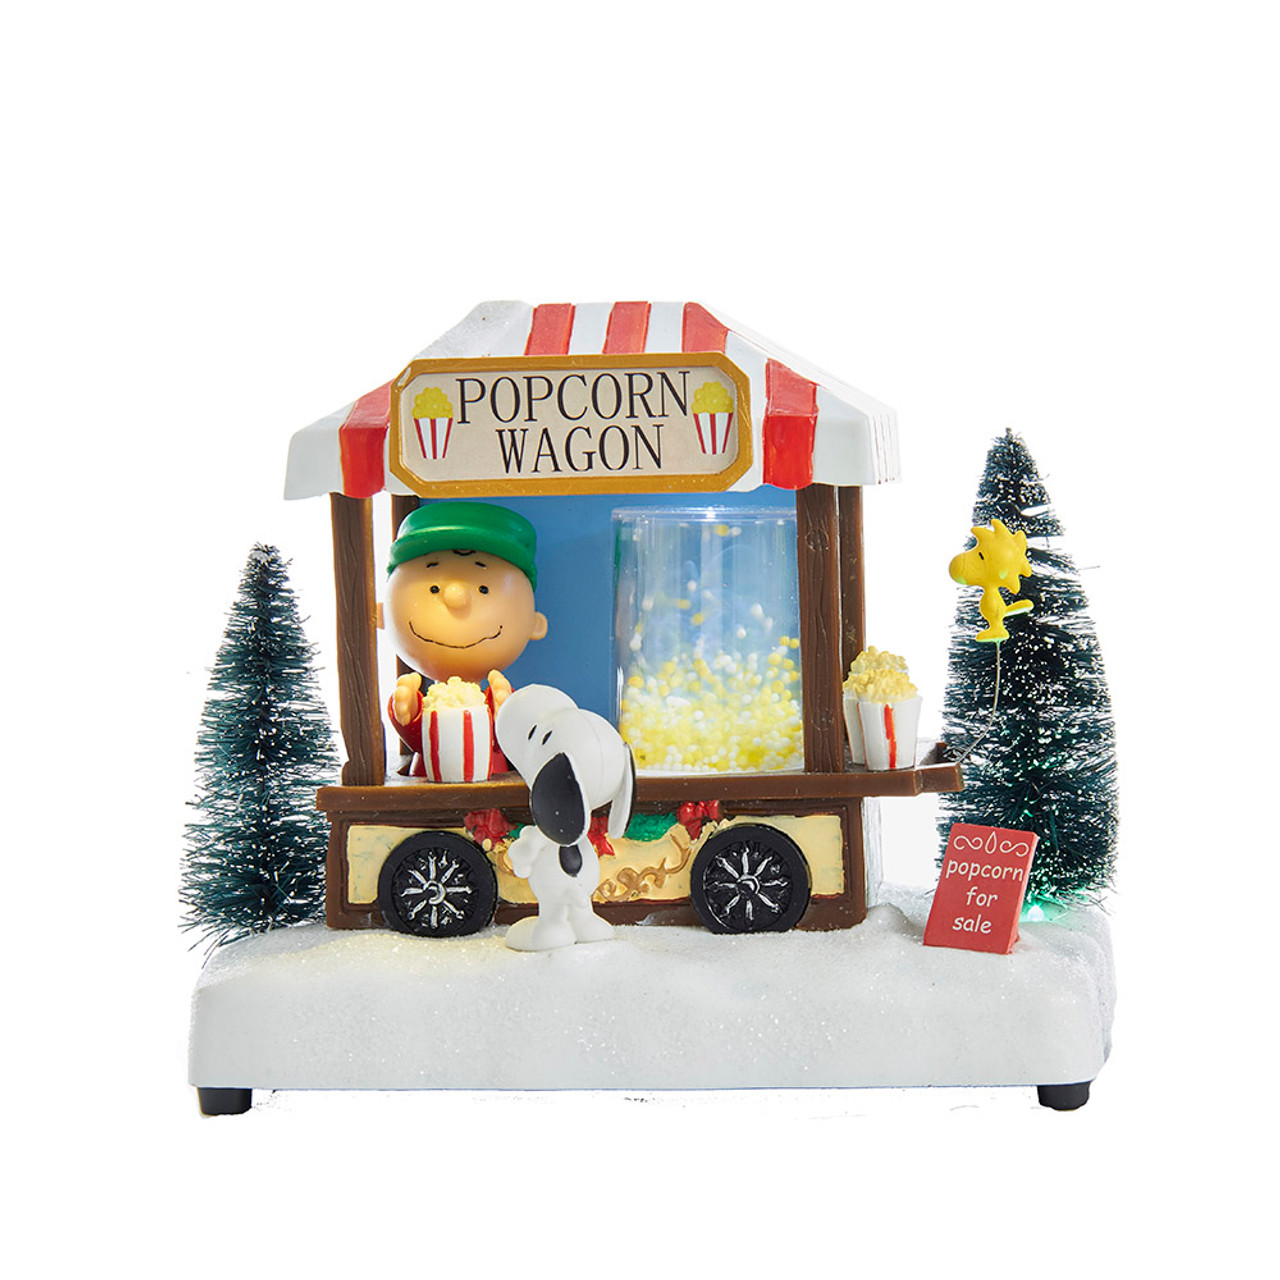 Peanuts Christmas Musical.Charlie Brown And Snoopy Popcorn Wagon Peanuts Musical Lighted Table Piece